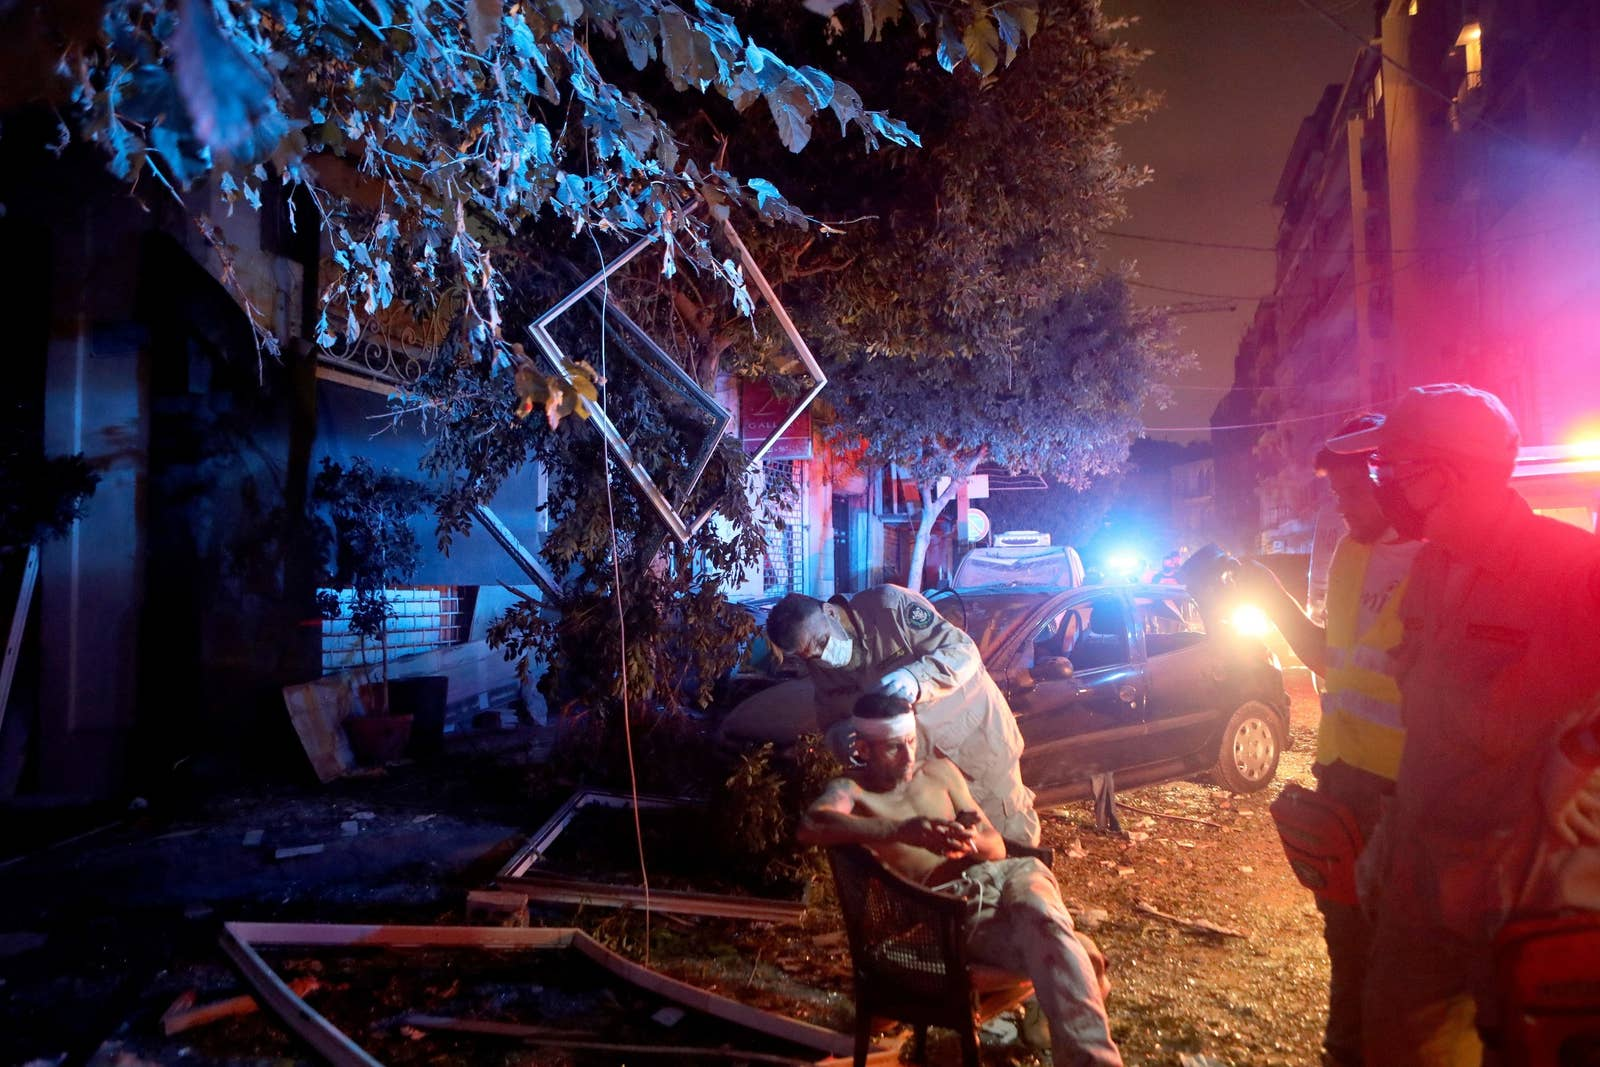 An injured man sits outside under red and white lights at night while a rescue worker examines his bandaged head